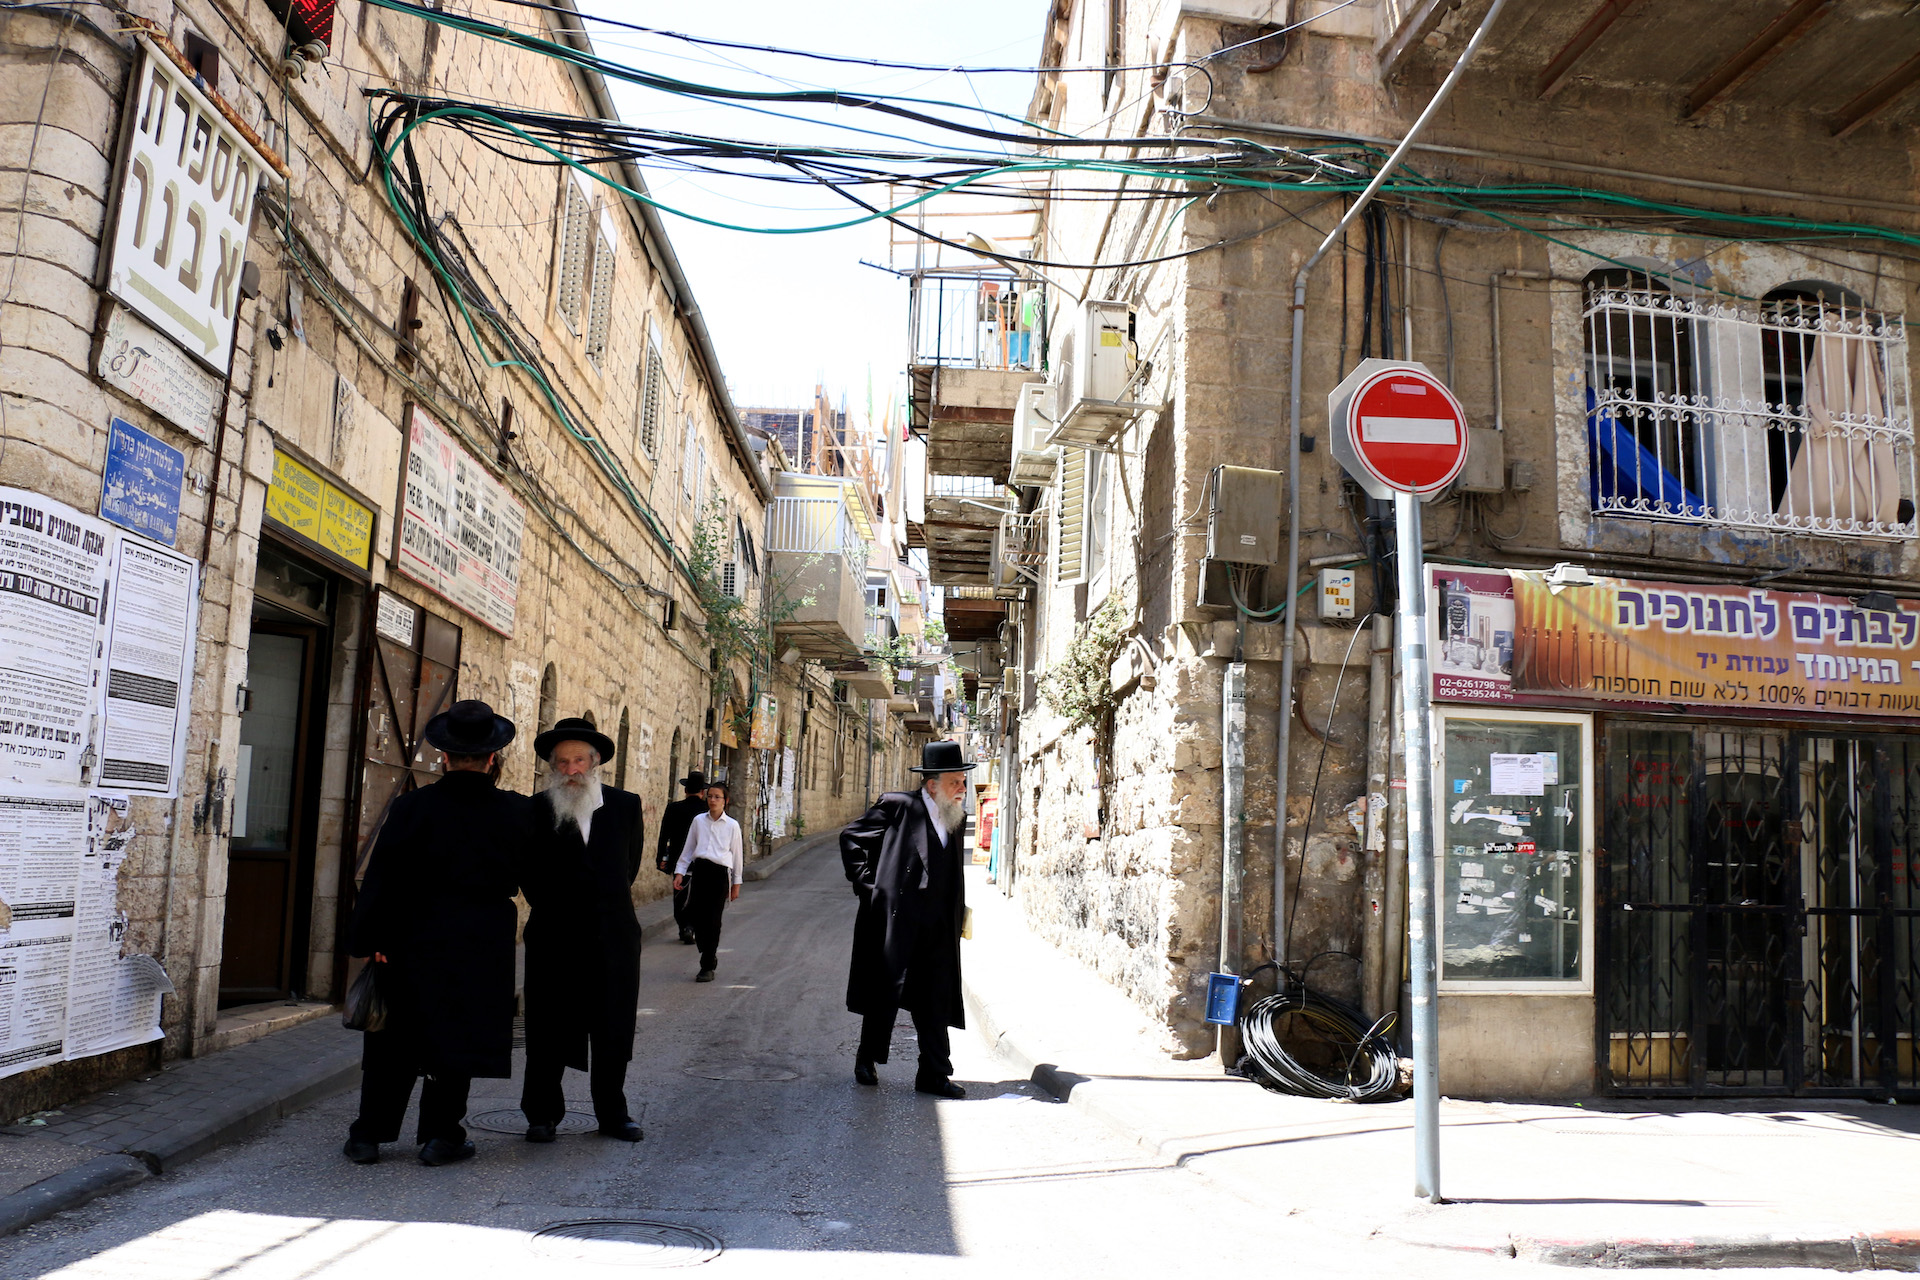 JERUSALEM, ISRAEL, MAY 30, 2016. Men walking down the street in the ultra-Orthodox neighborhood of Mea Shearim in Jerusalem. 05/30/2016. Photo by Donna M. Airoldi